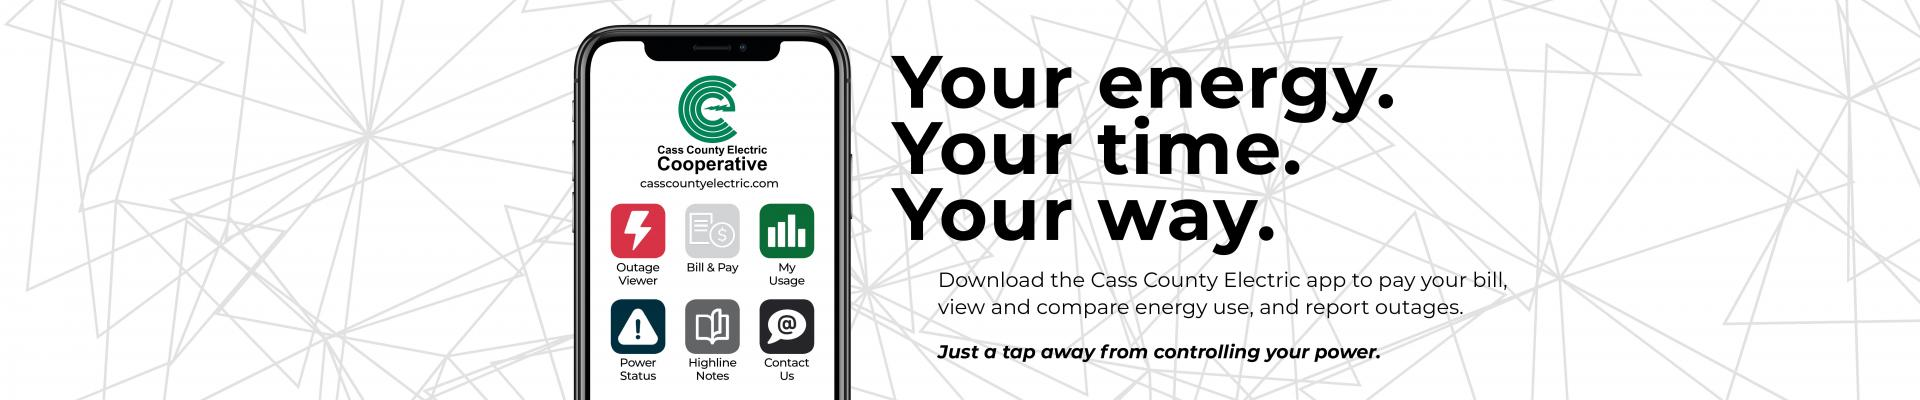 Download the new cass county electric app. Your energy. Your time. Your way.